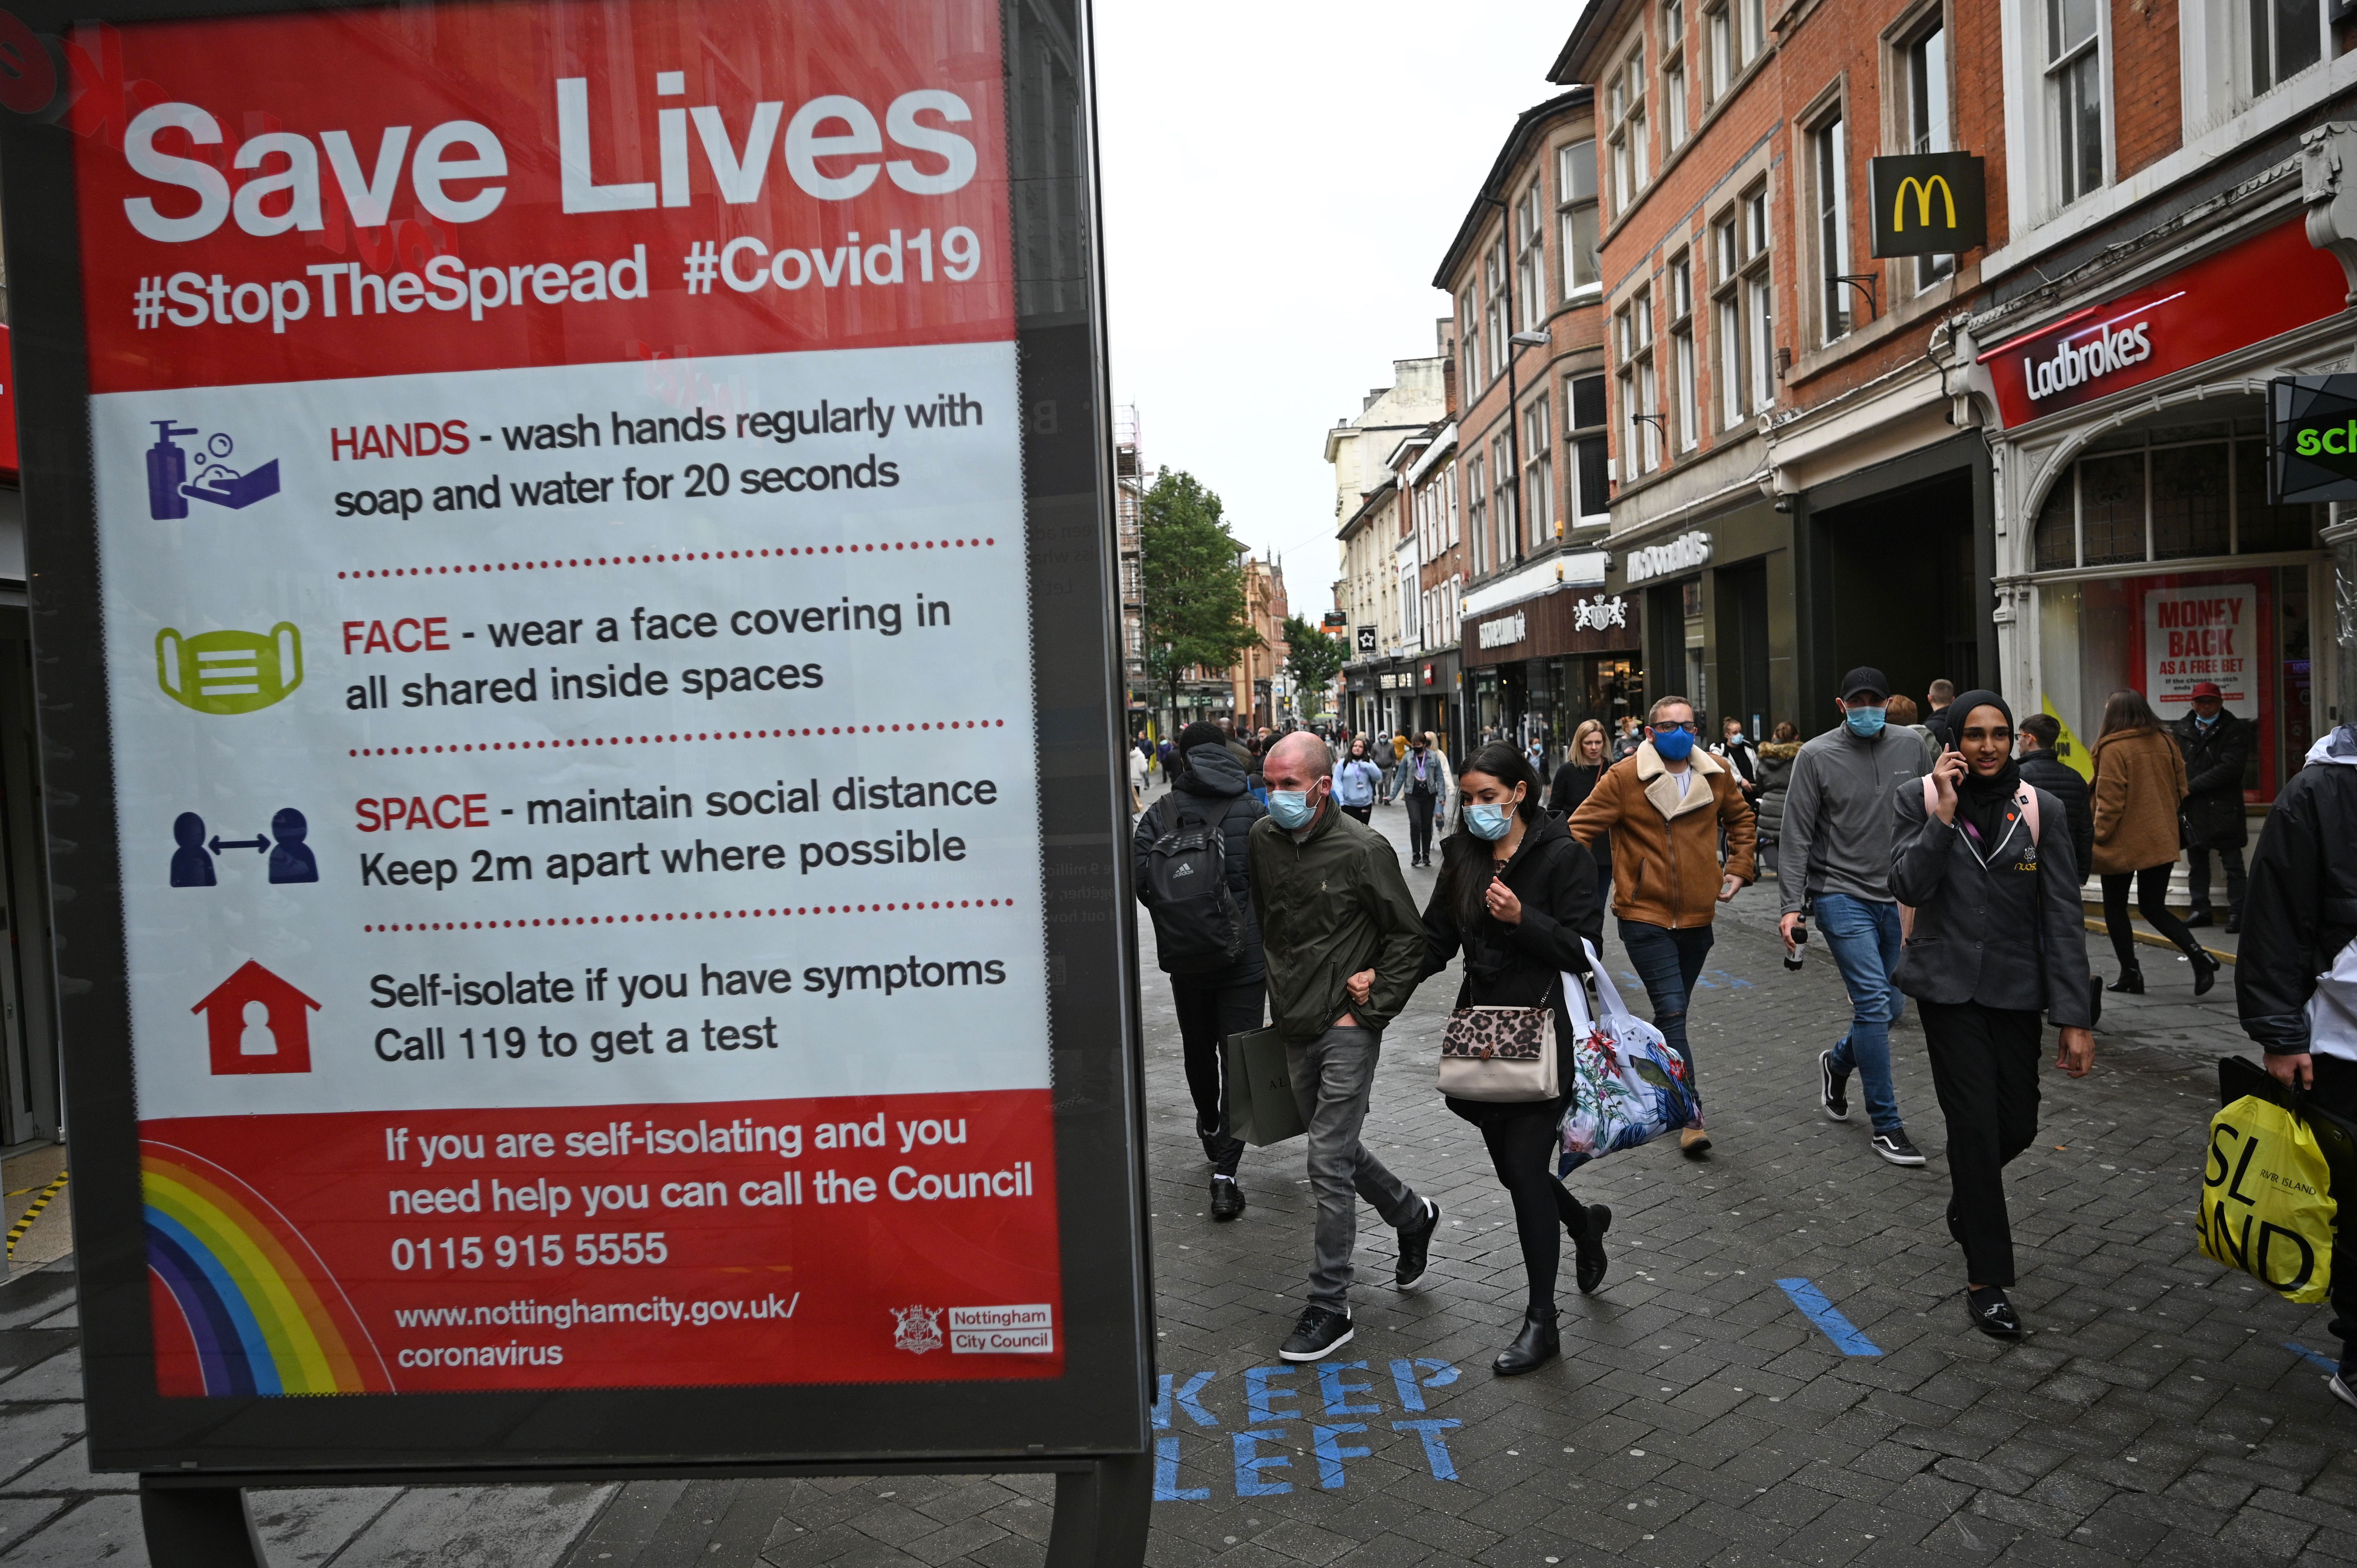 A board displays information about Covid-19 in Nottingham, England, on October 9.